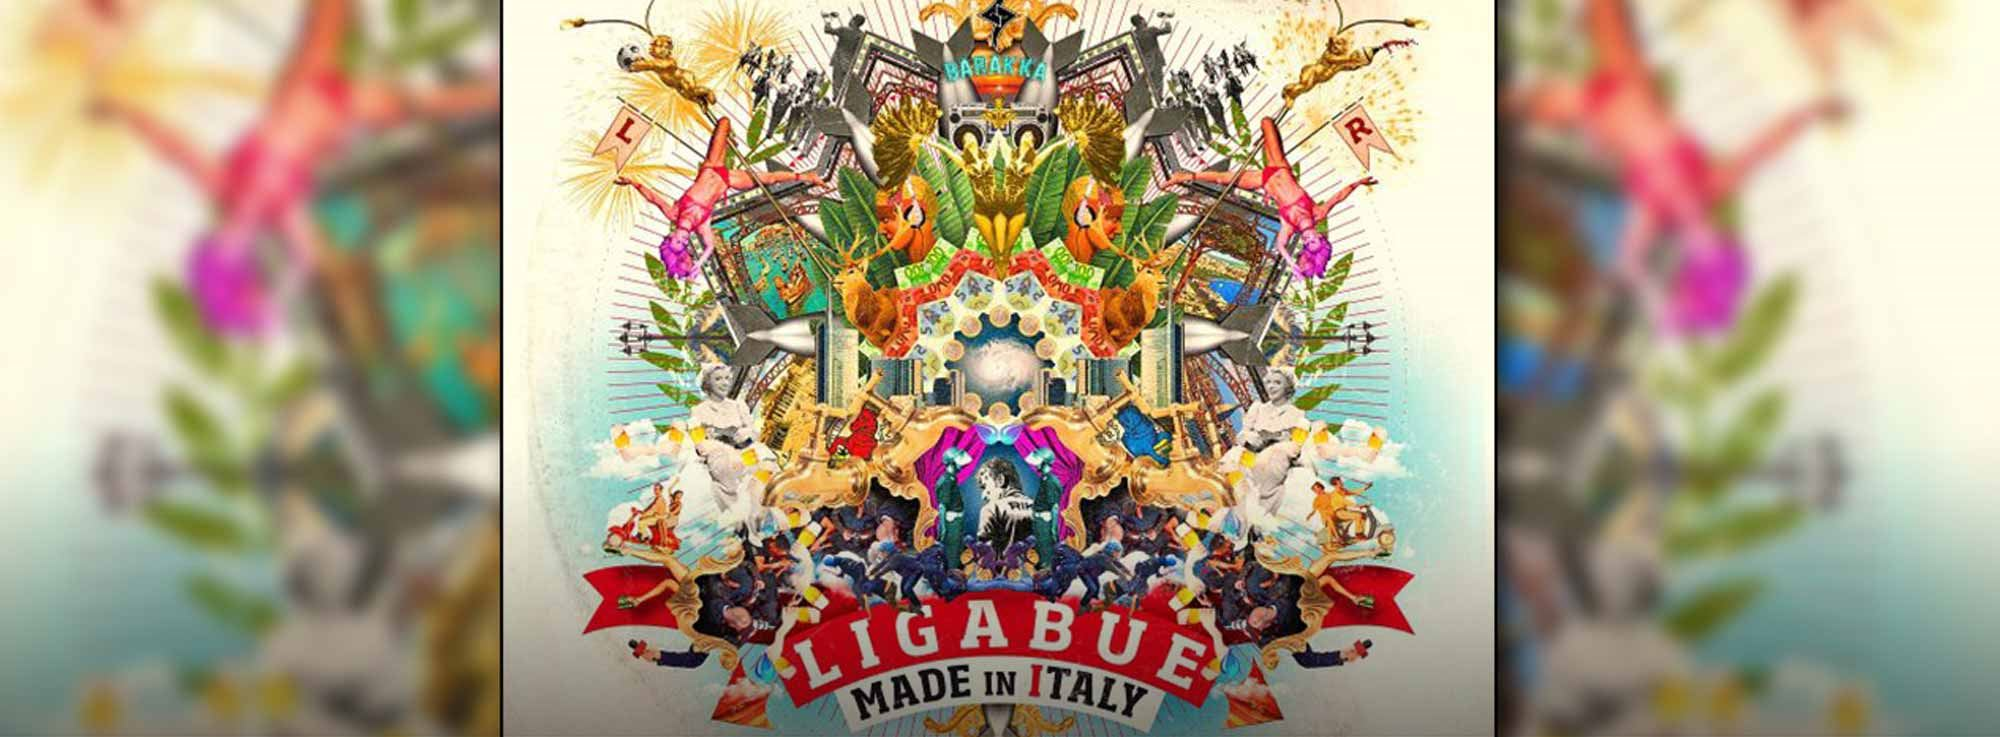 Bari: Ligabue Made in Italy Palasport 2017